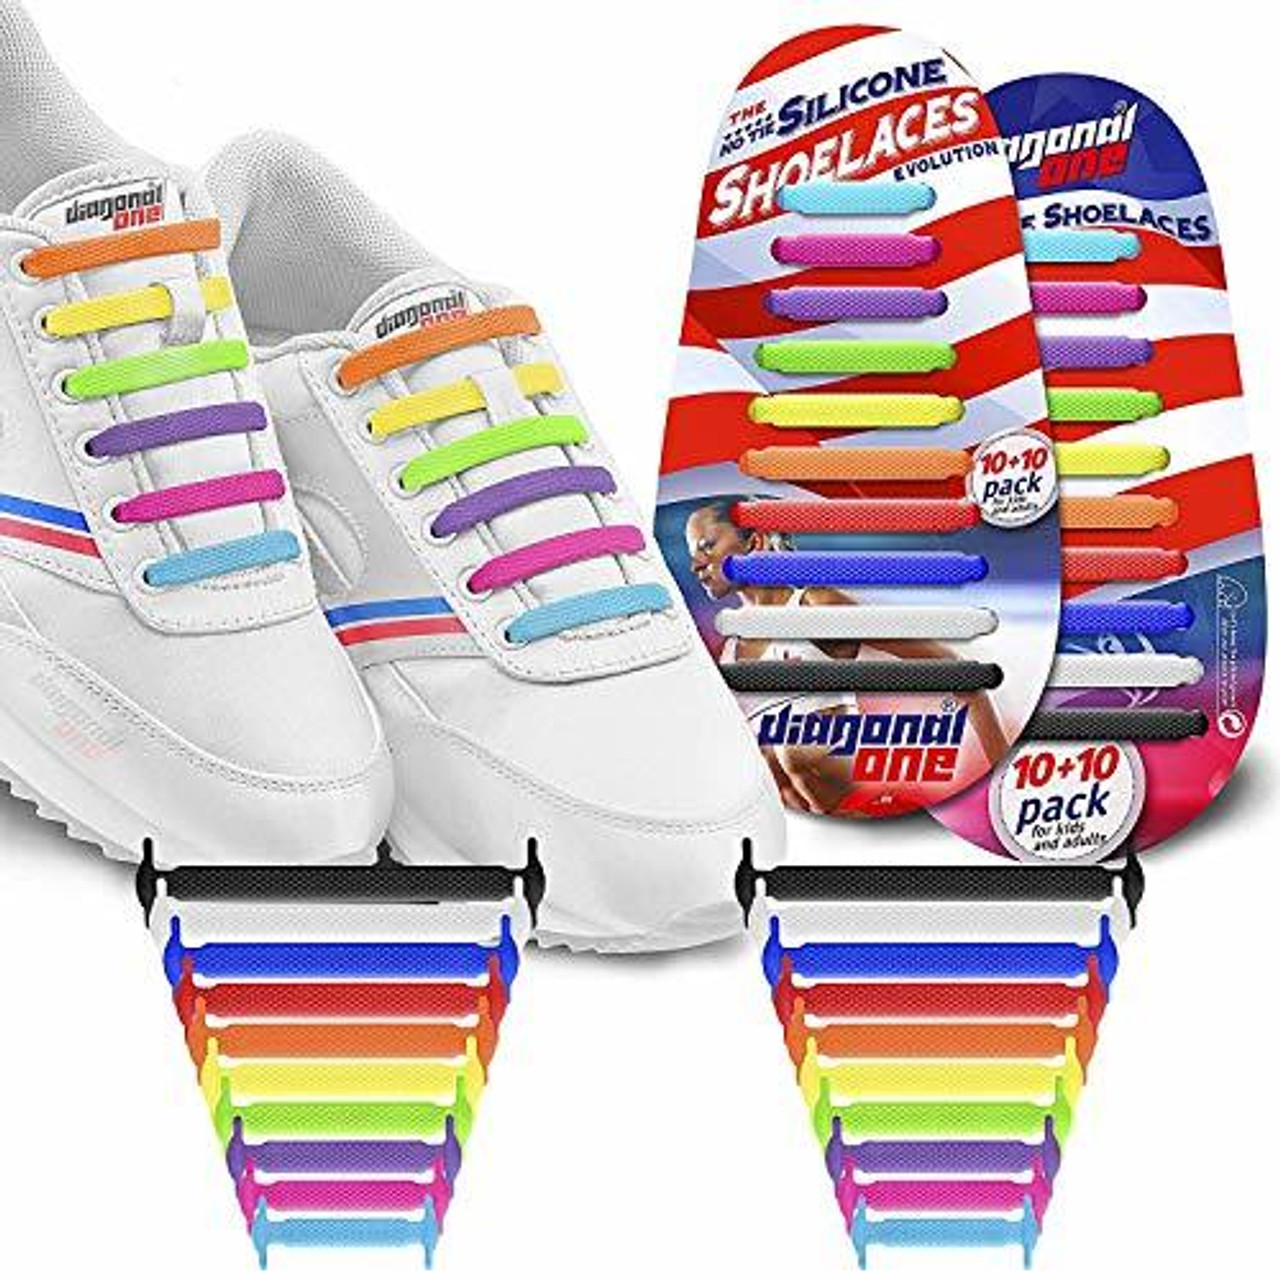 sale uk 100% quality popular brand DIAGONAL ONE No Tie Shoelaces for Kids & Adults (Multicolour)